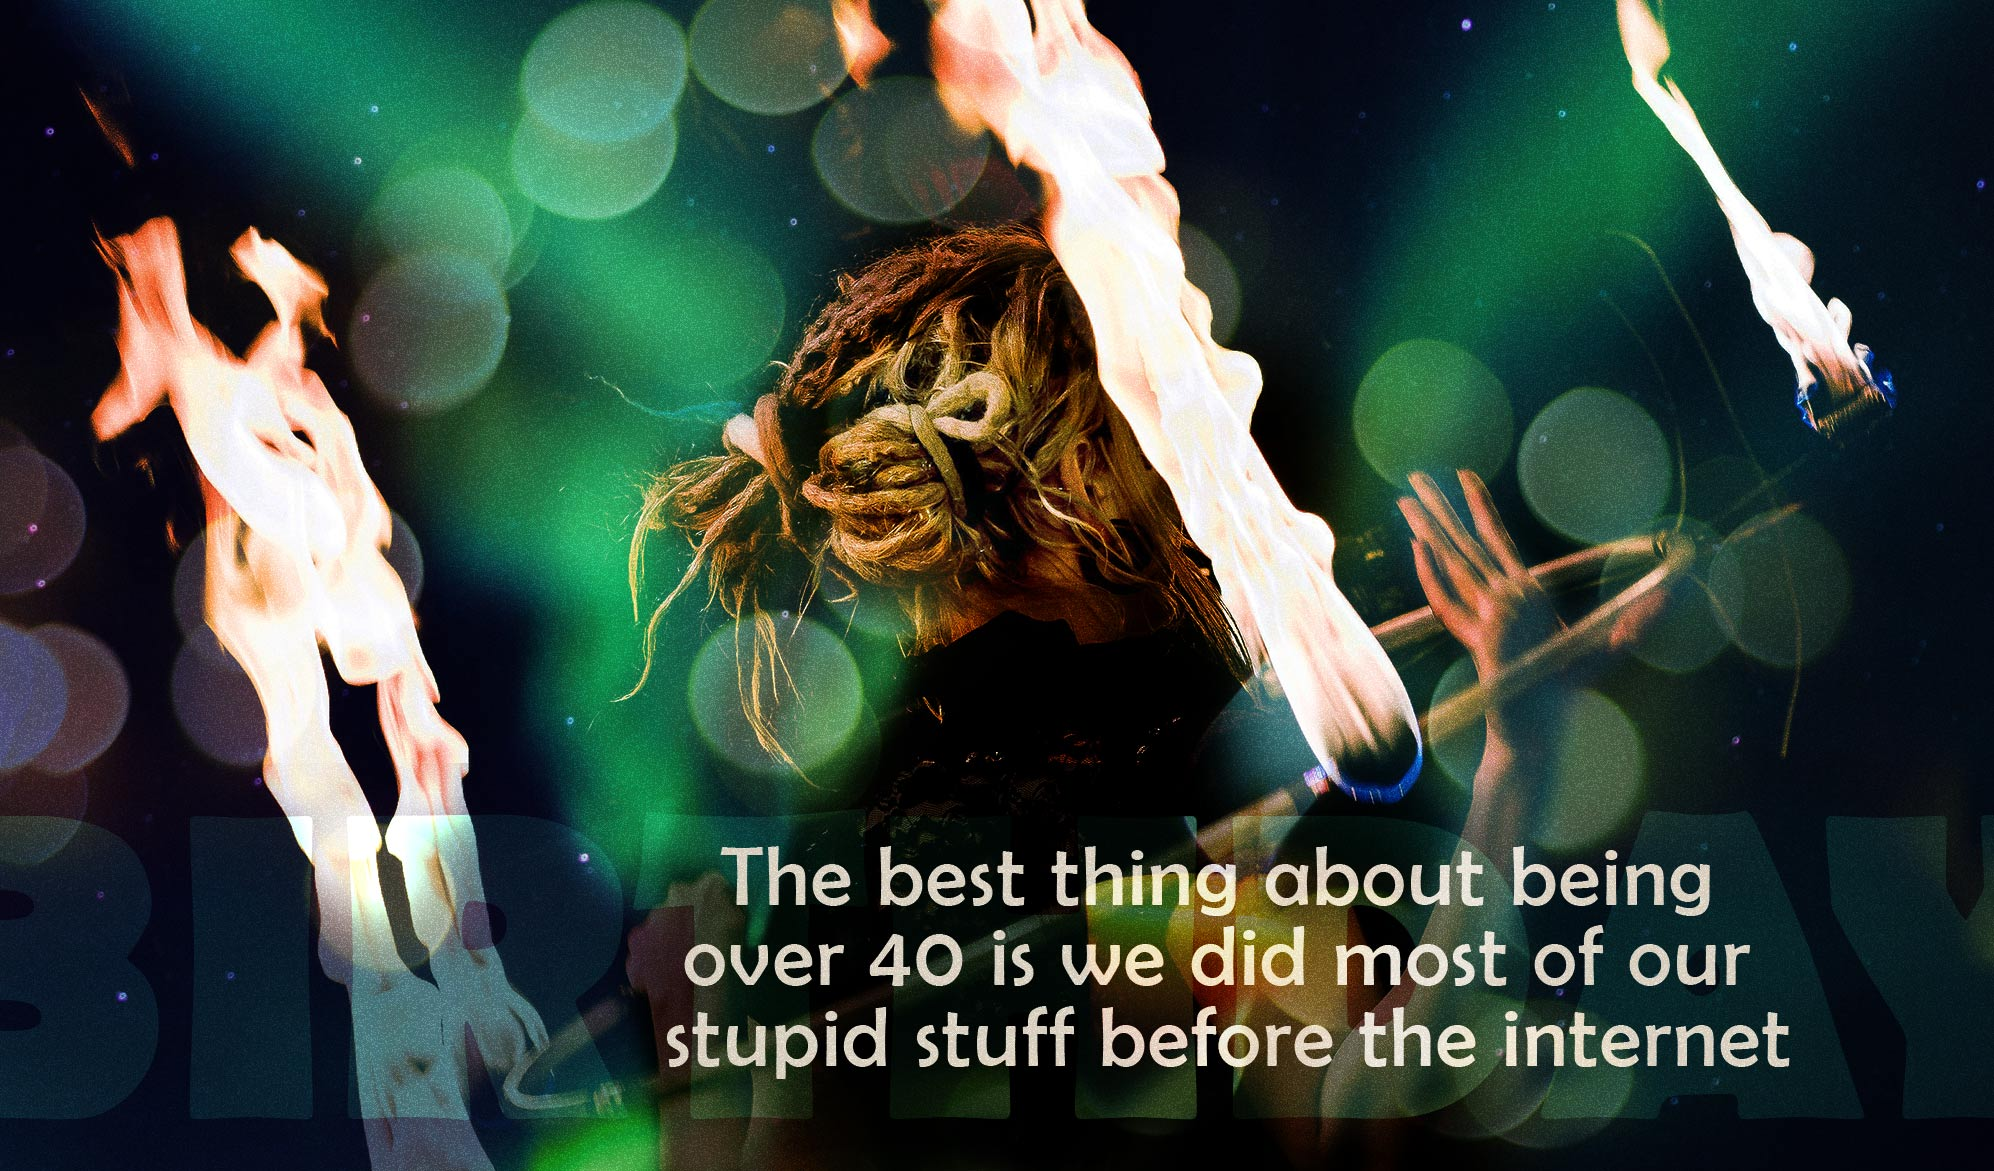 daily inspirational quote image: a woman juggling a hula hoop on fire